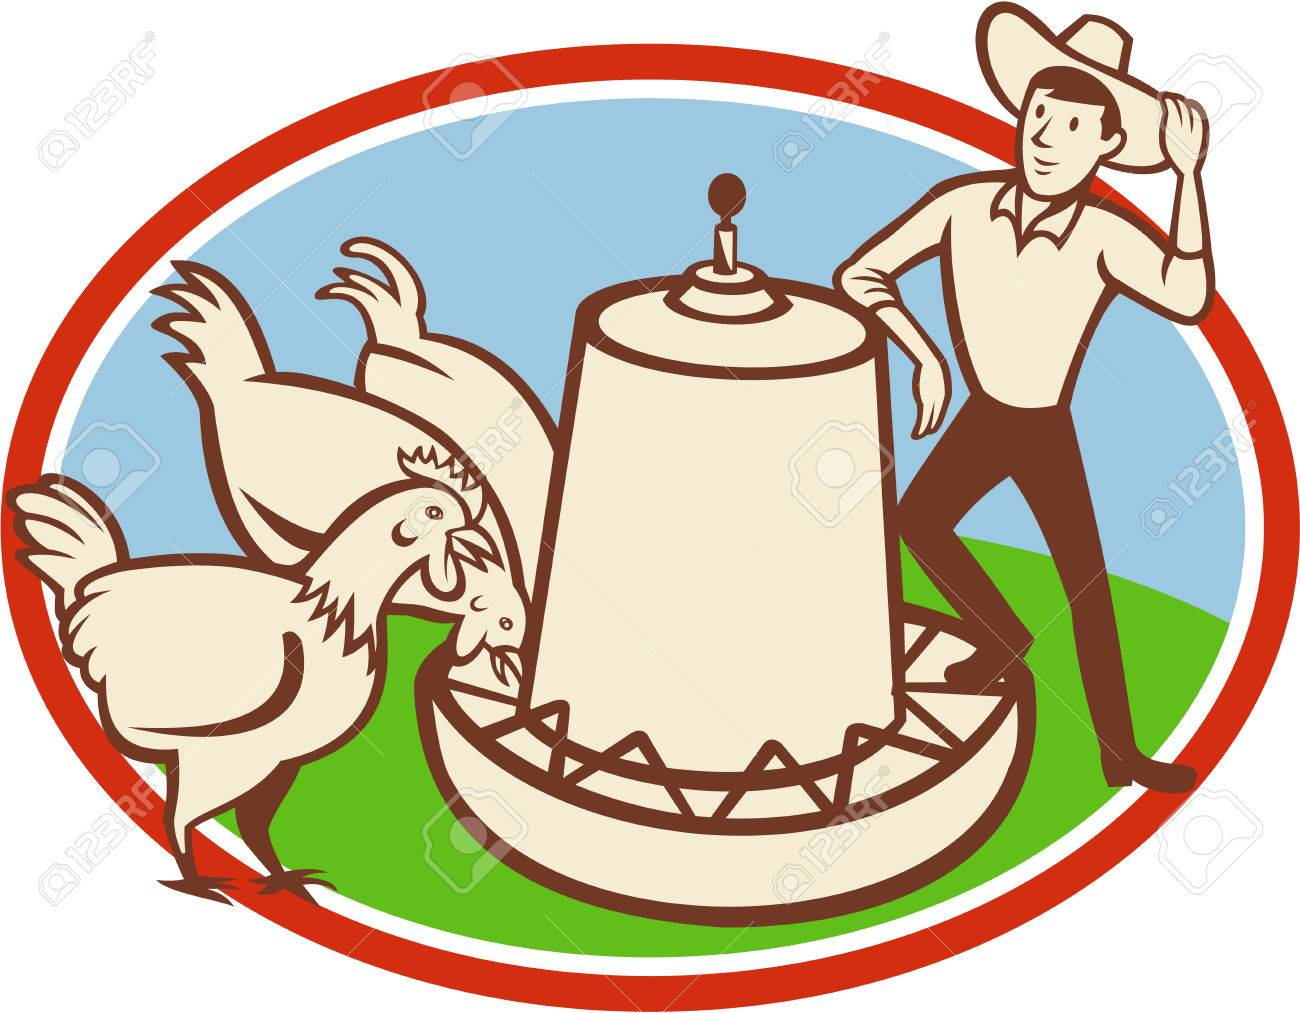 Illustration of a group of hen chicken feeding on feeder bowl with male farmer set inside oval done in cartoon style. - 23661455